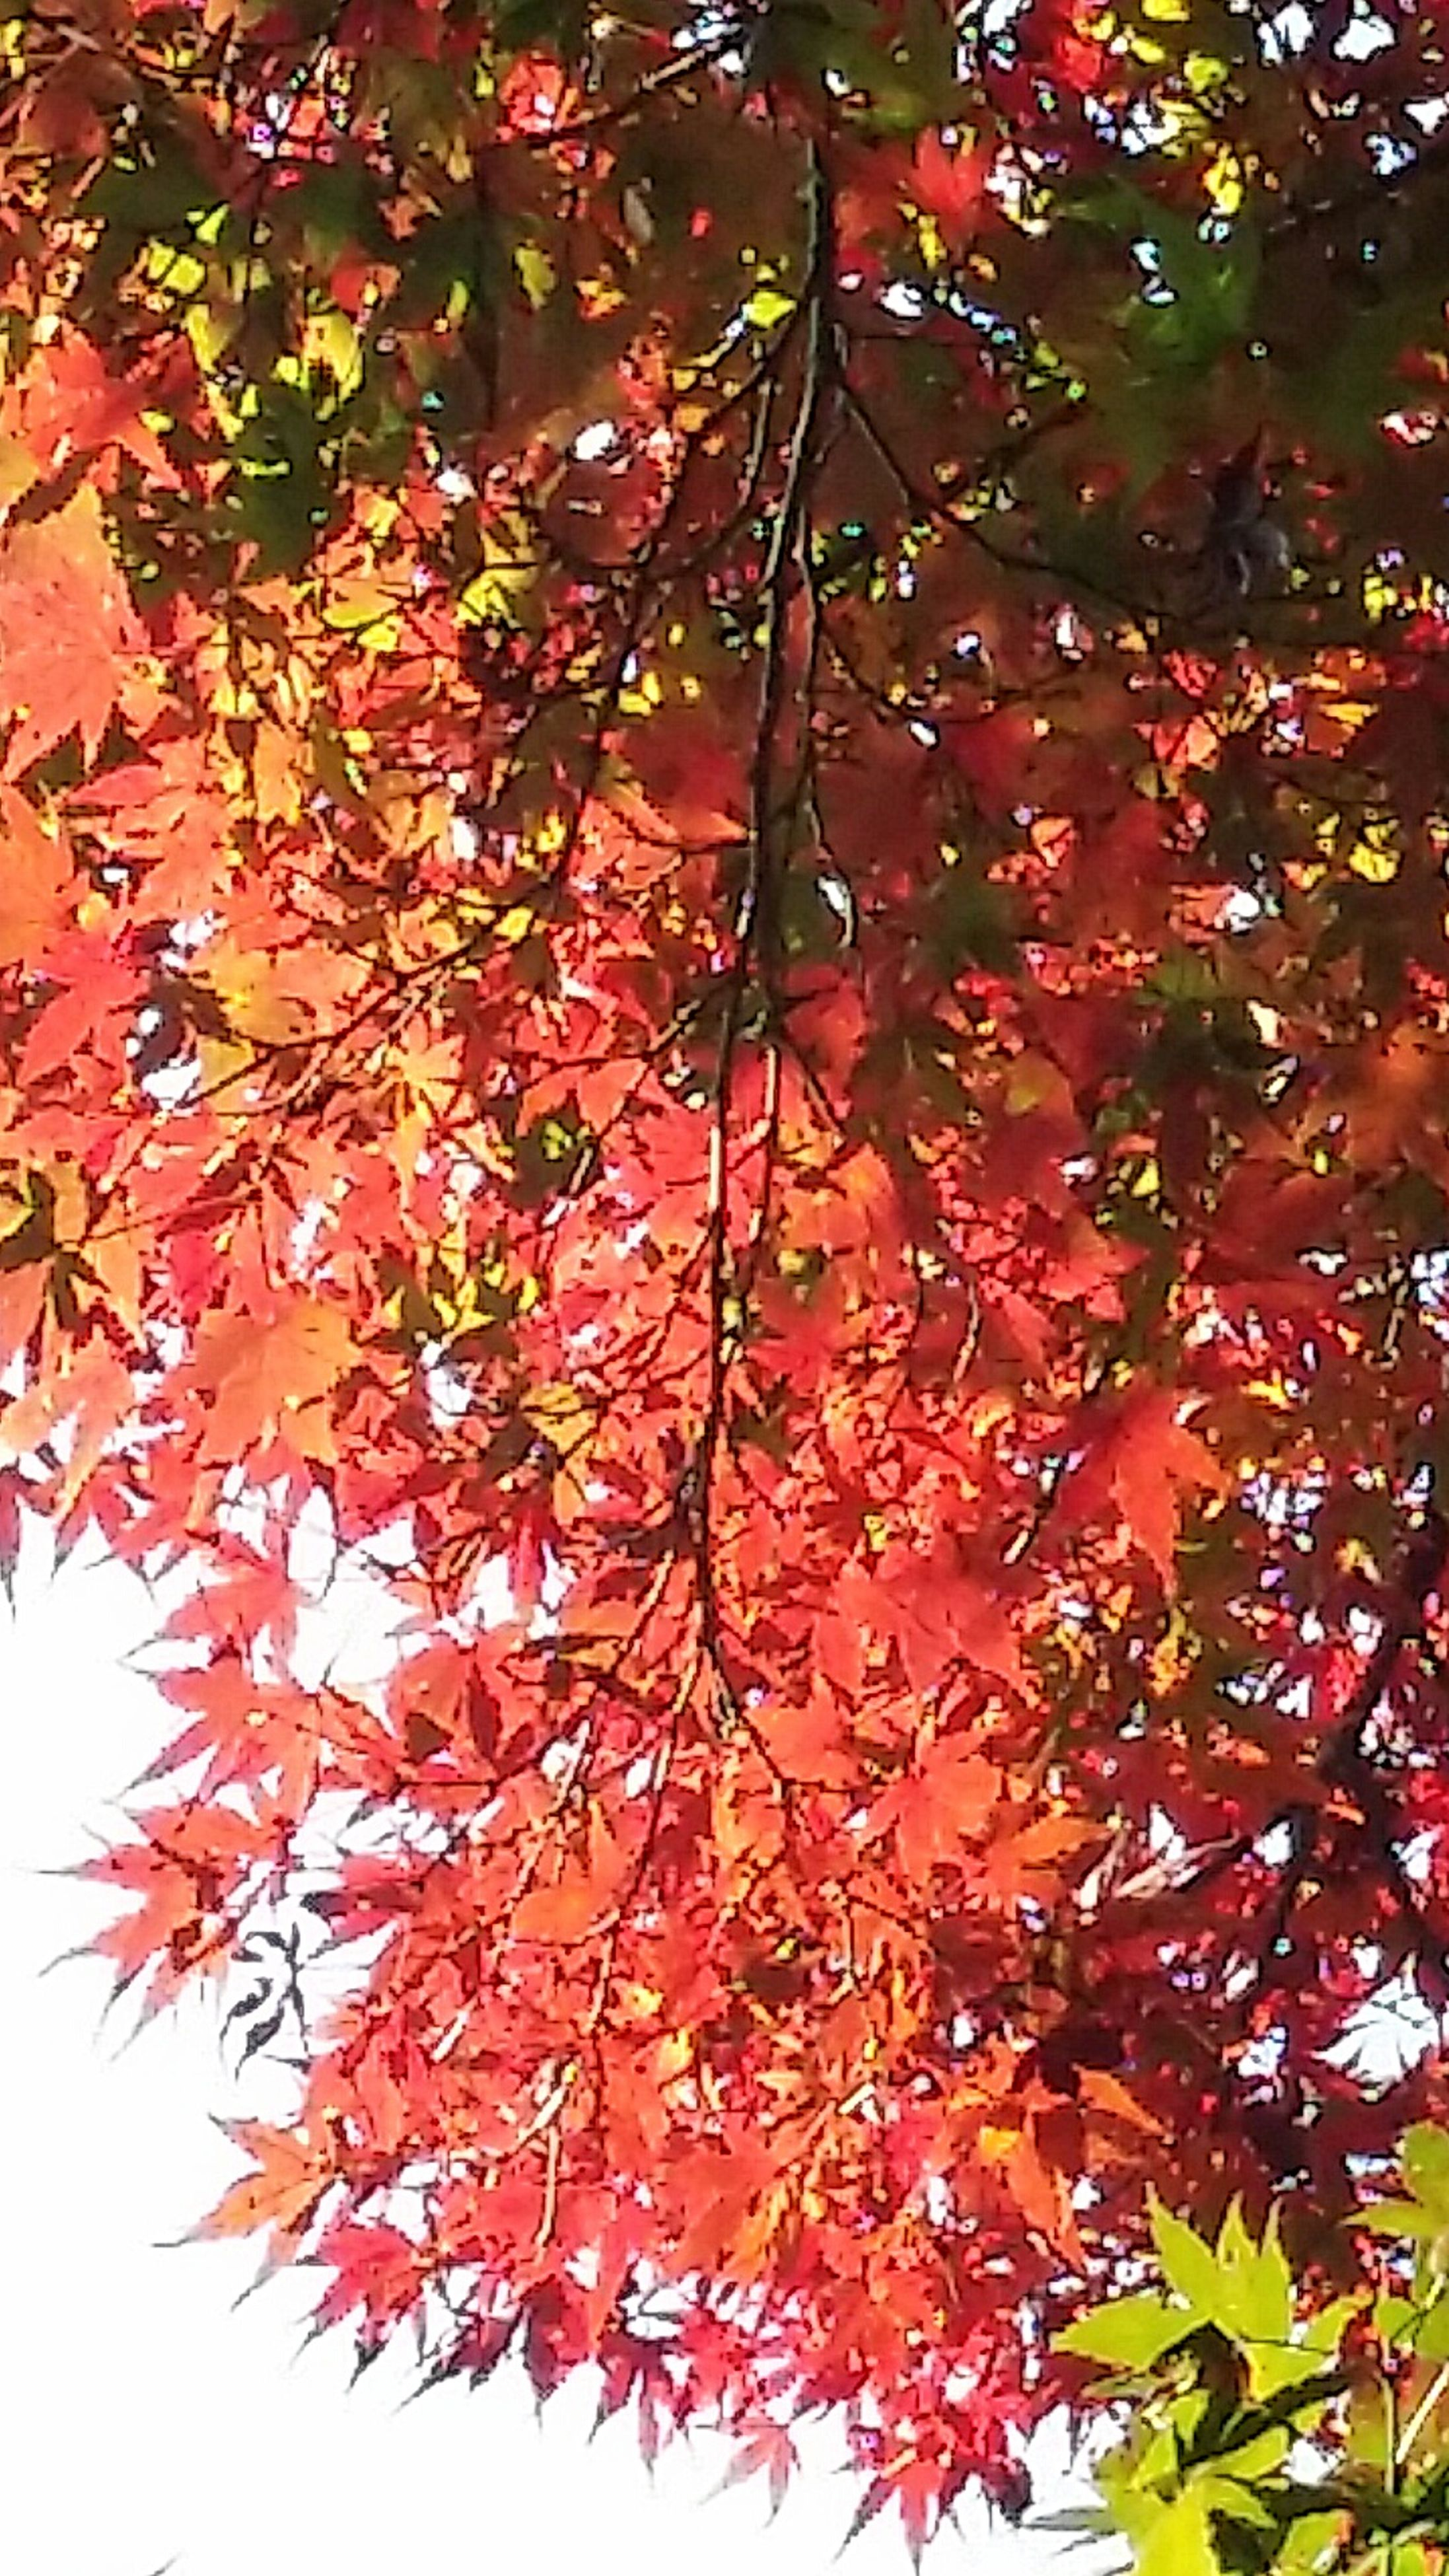 tree, nature, growth, beauty in nature, branch, leaf, orange color, autumn, change, low angle view, no people, red, outdoors, day, maple leaf, tranquility, close-up, sky, freshness